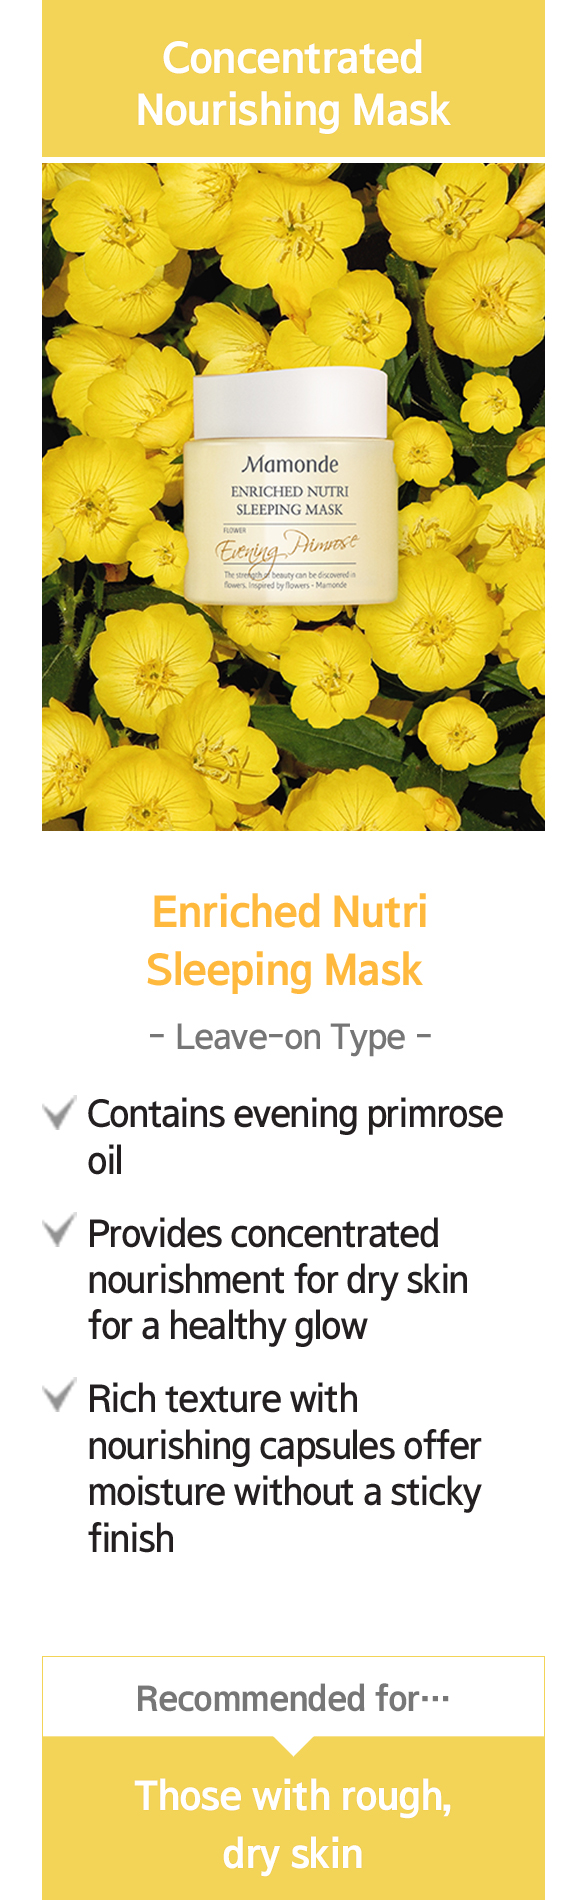 enriched nutri sleeping mask detail link